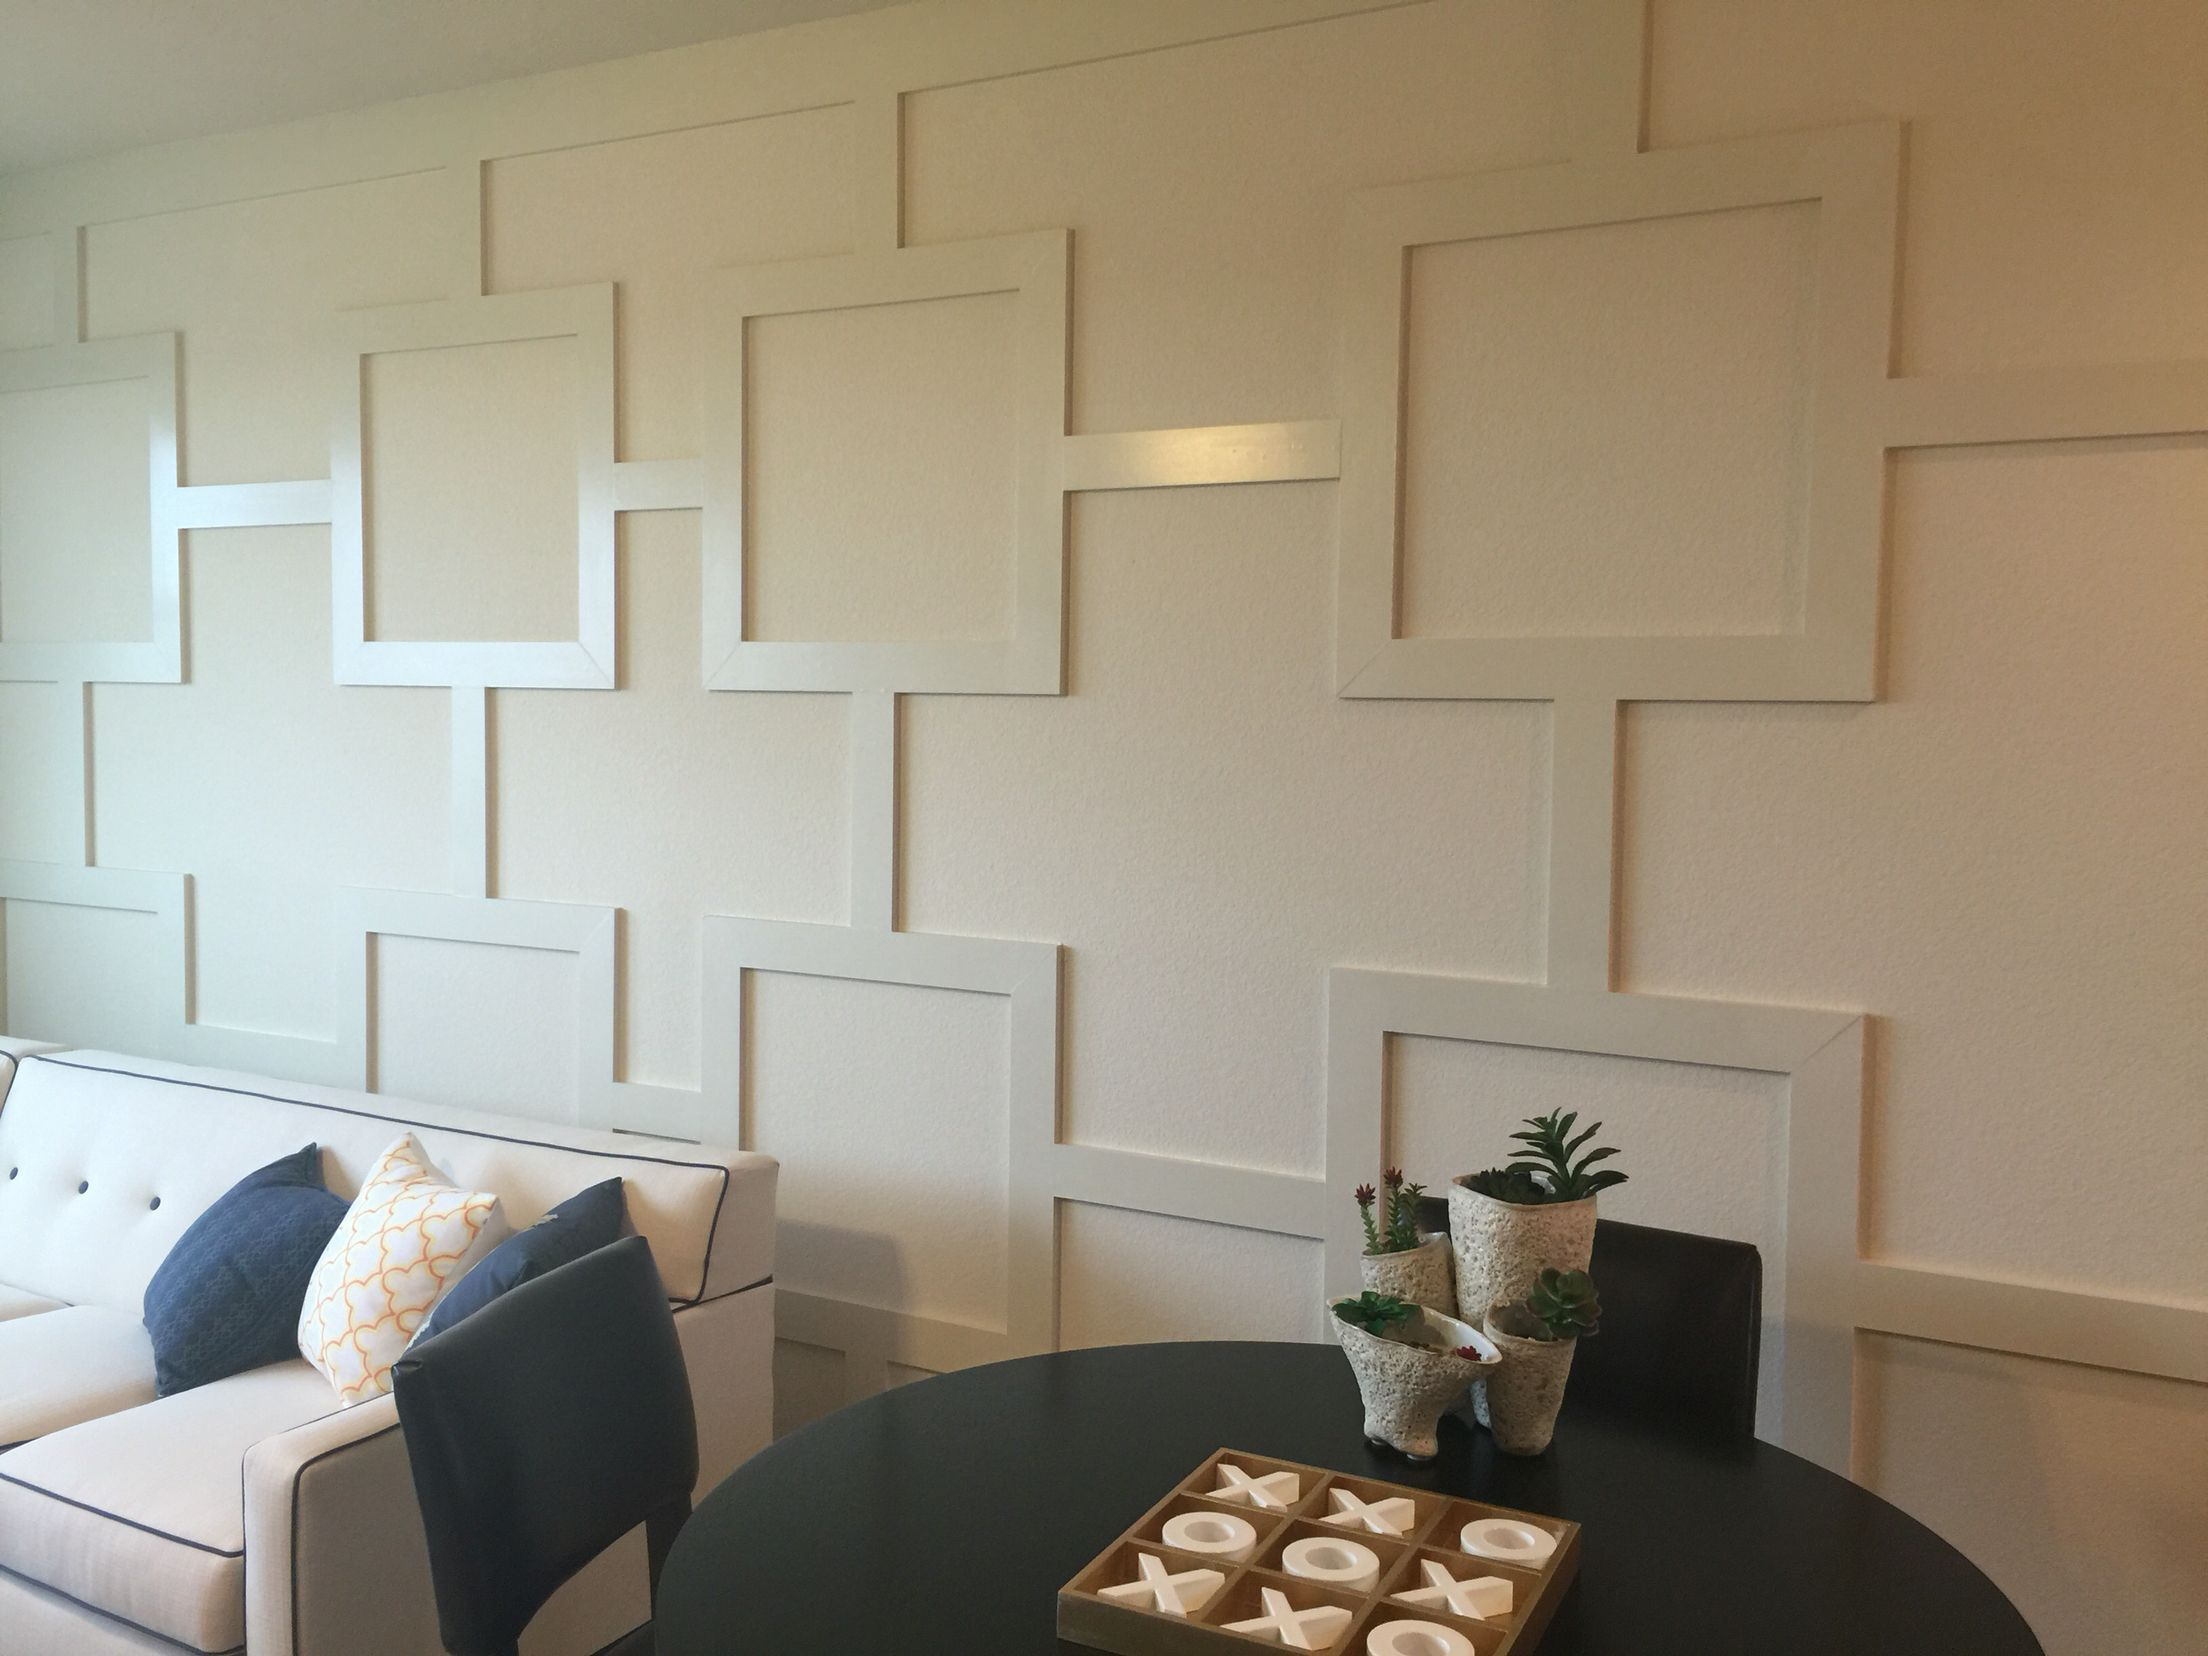 Wood Trim Design Accent Wall. Simply Use 1x4's To Add This